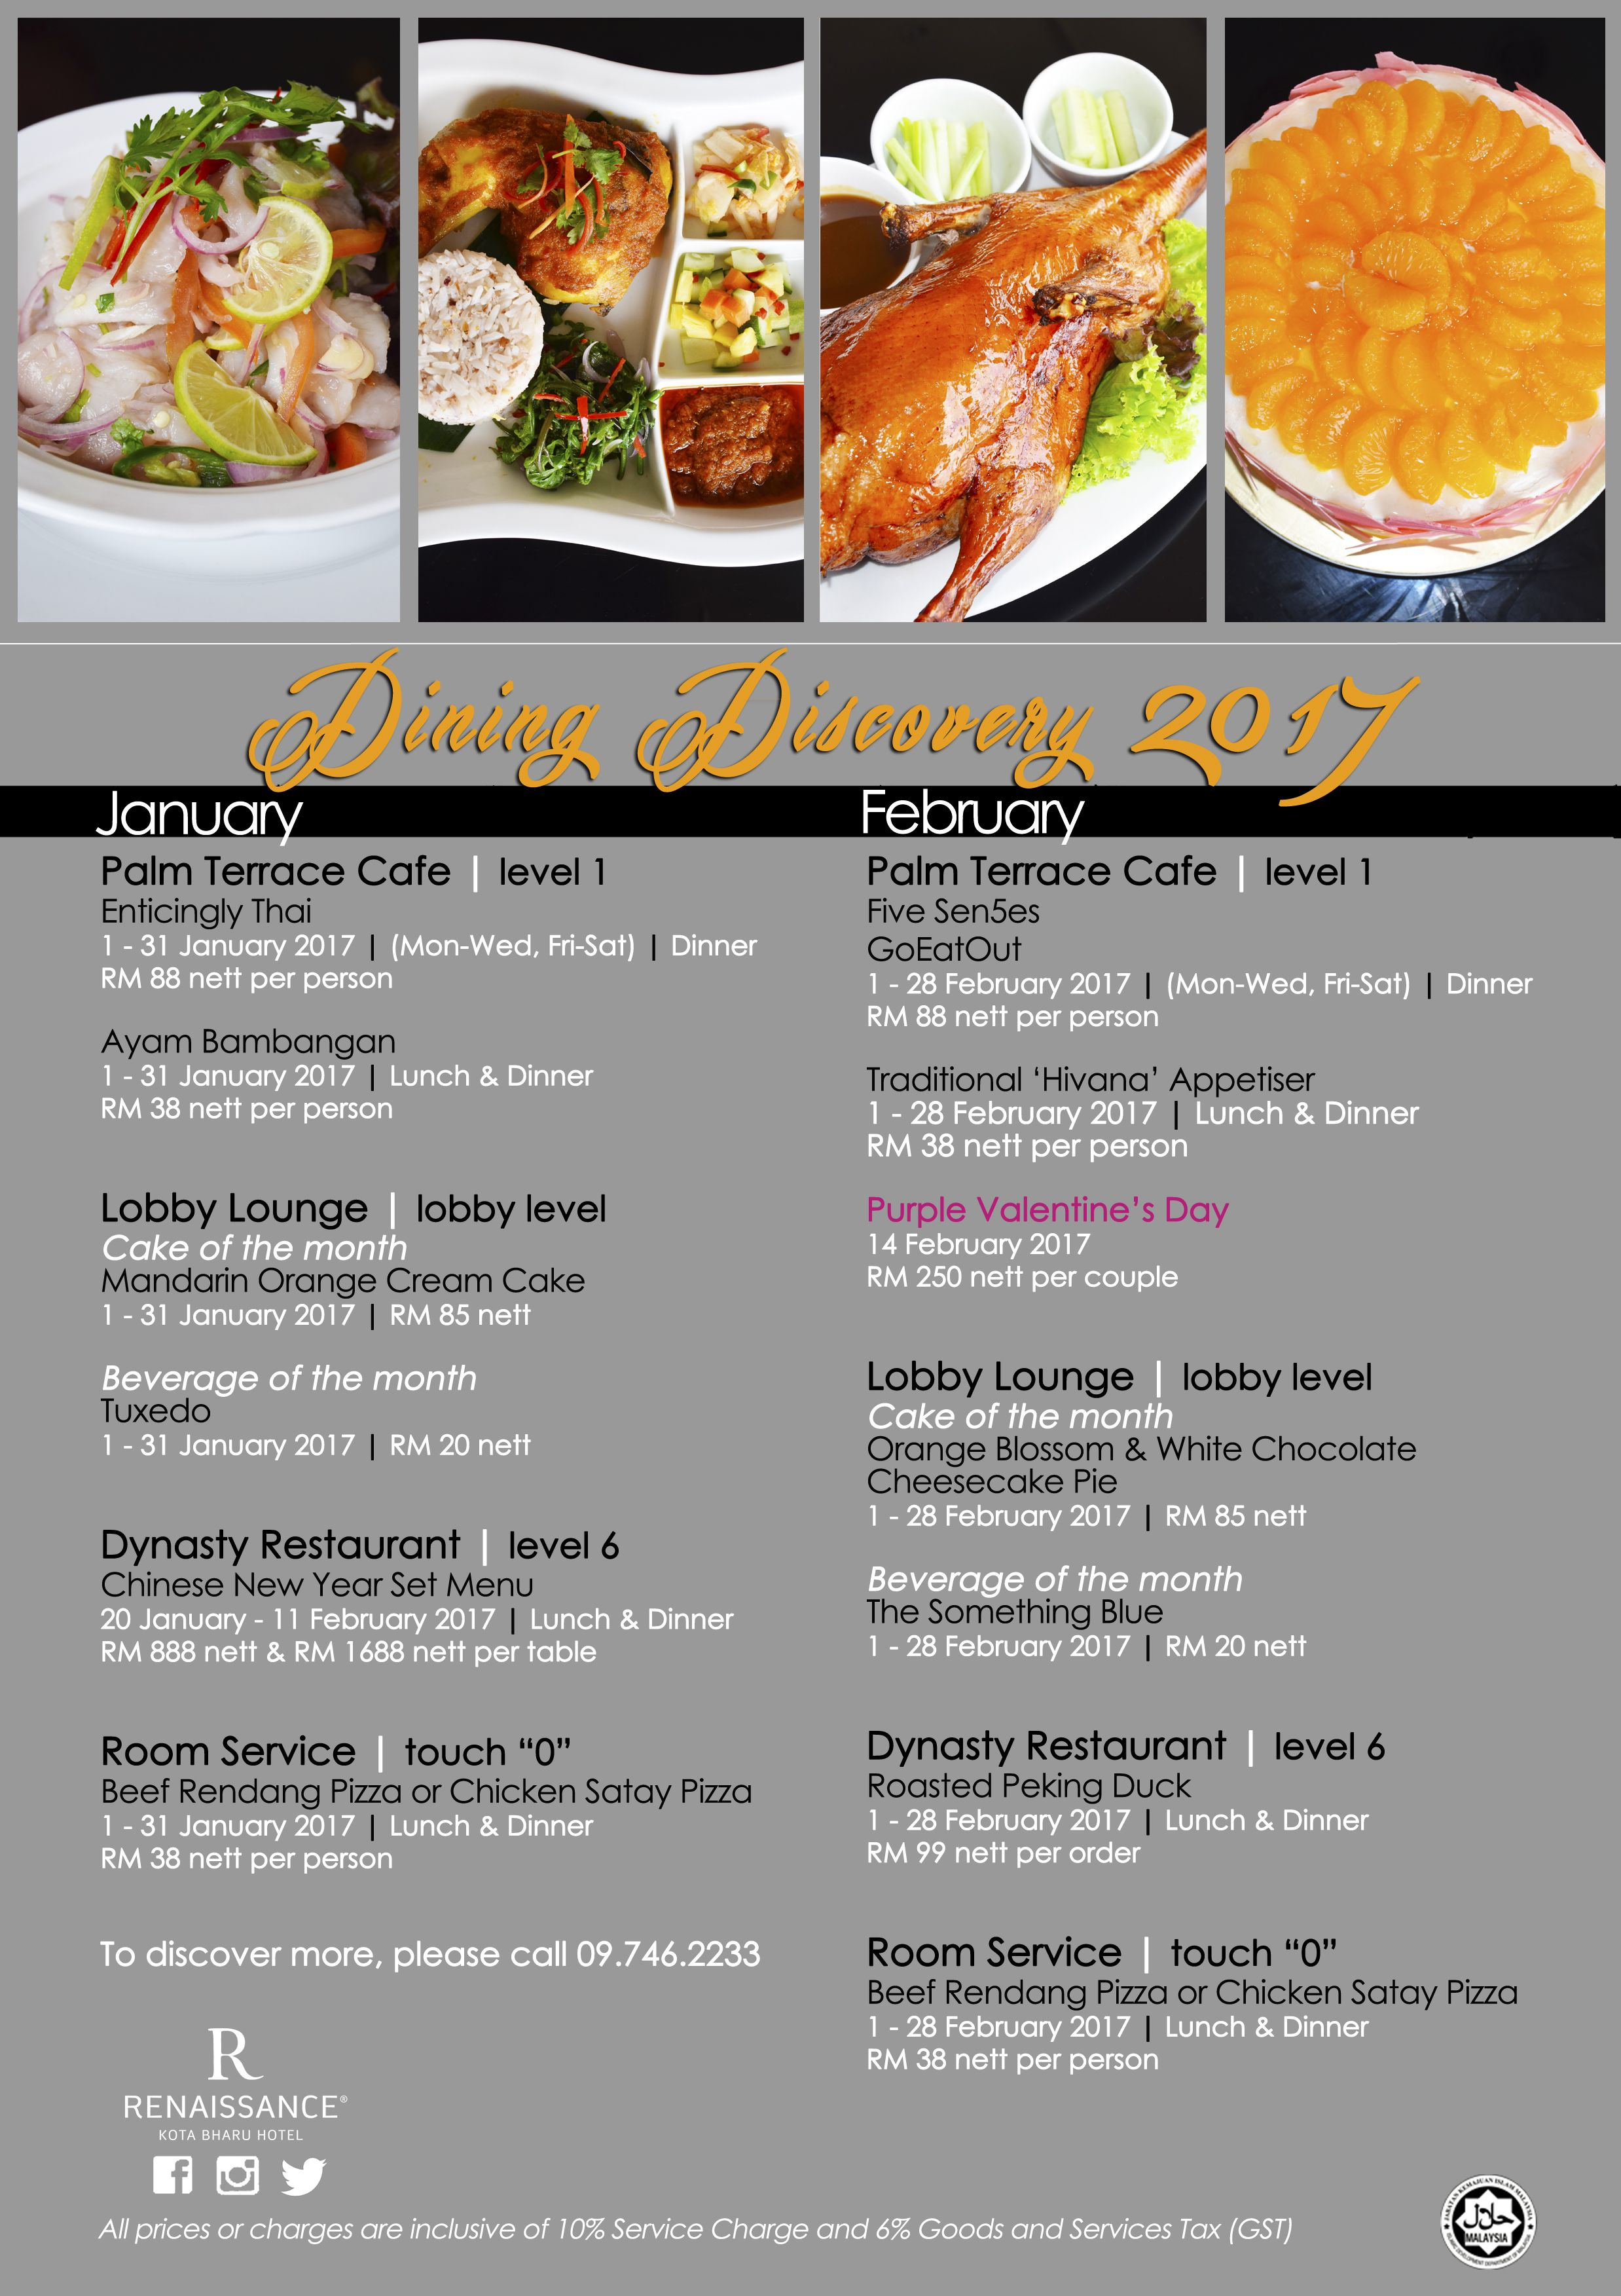 New Promotions For Next Year At Renaissance Kota Bharu Hotel Dinner Cafe Terrace Appetizers